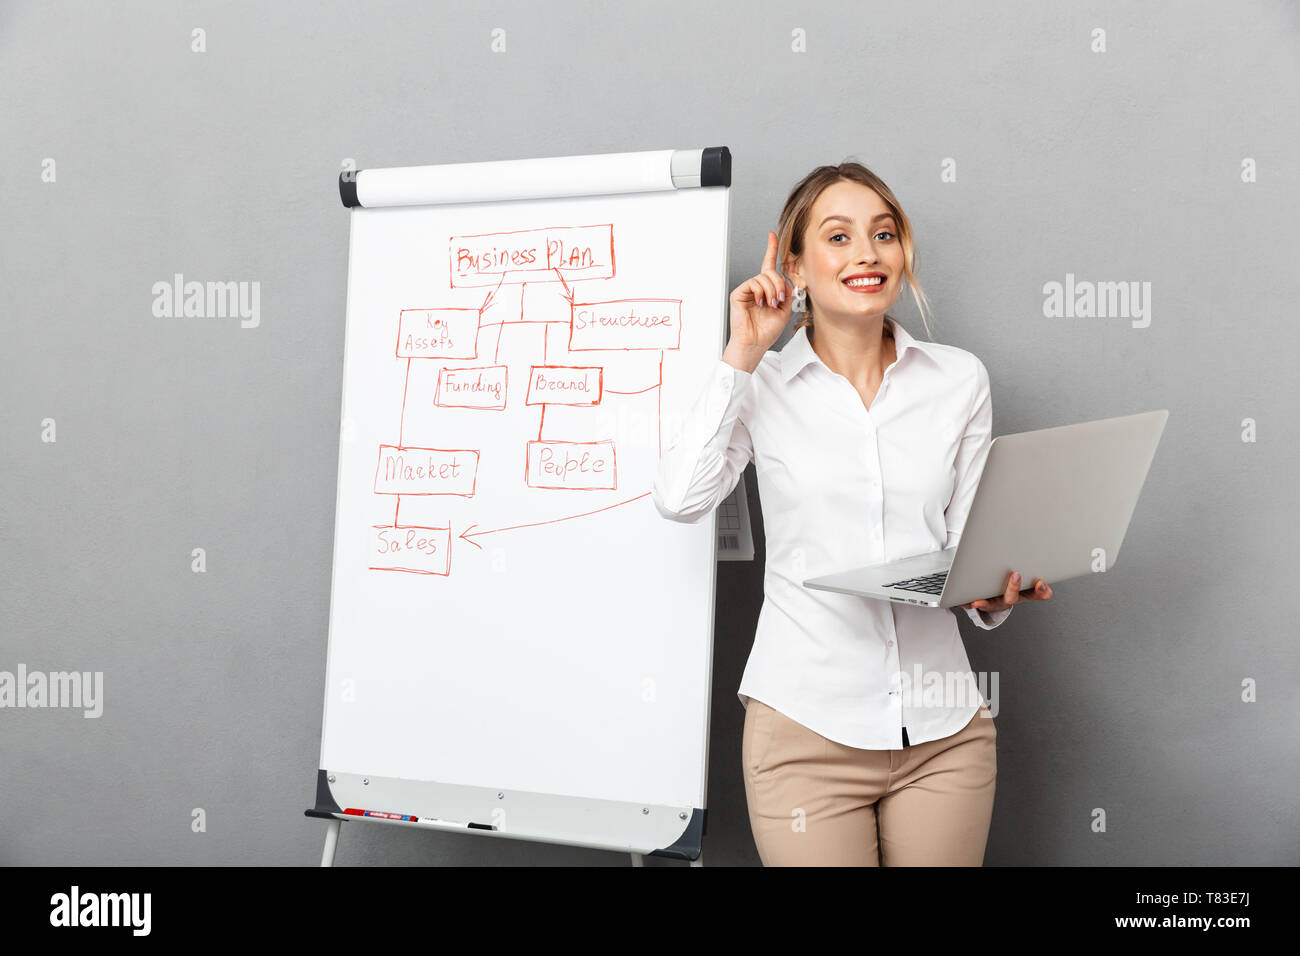 Image of attractive businesswoman in formal wear using flipchart and laptop while making presentation in the office isolated over gray background - Stock Image